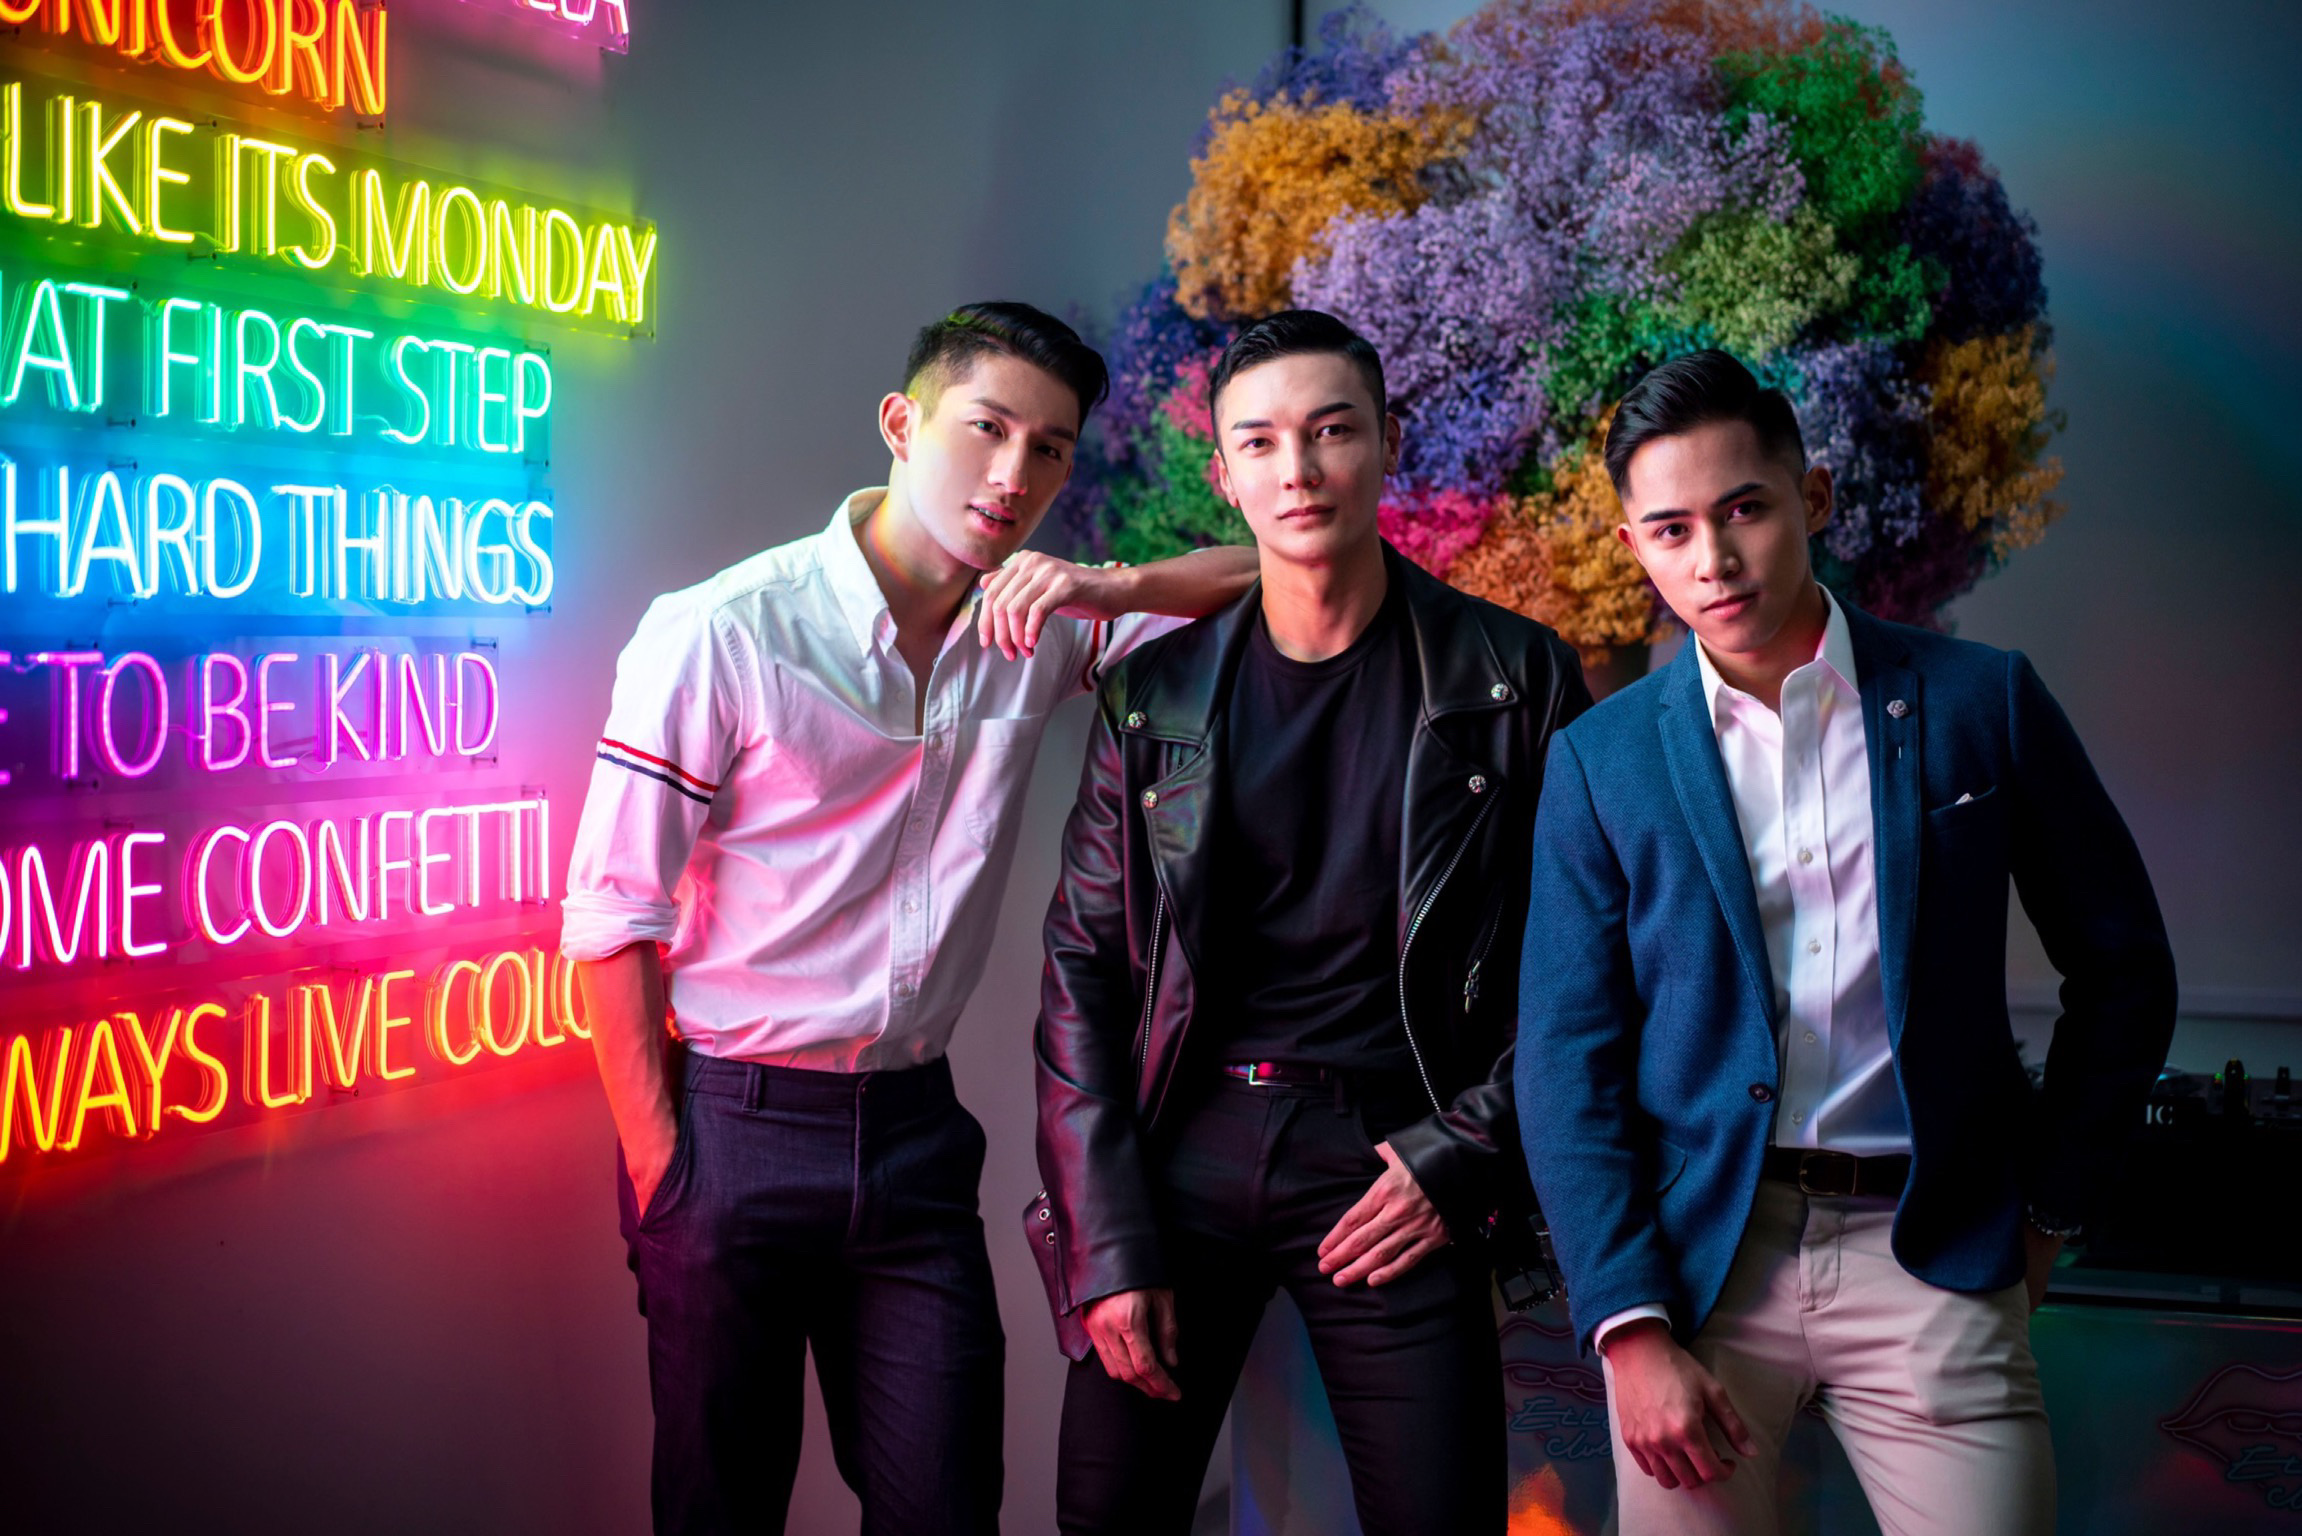 Ayden Sng, Jumius Wong and Danil Palma